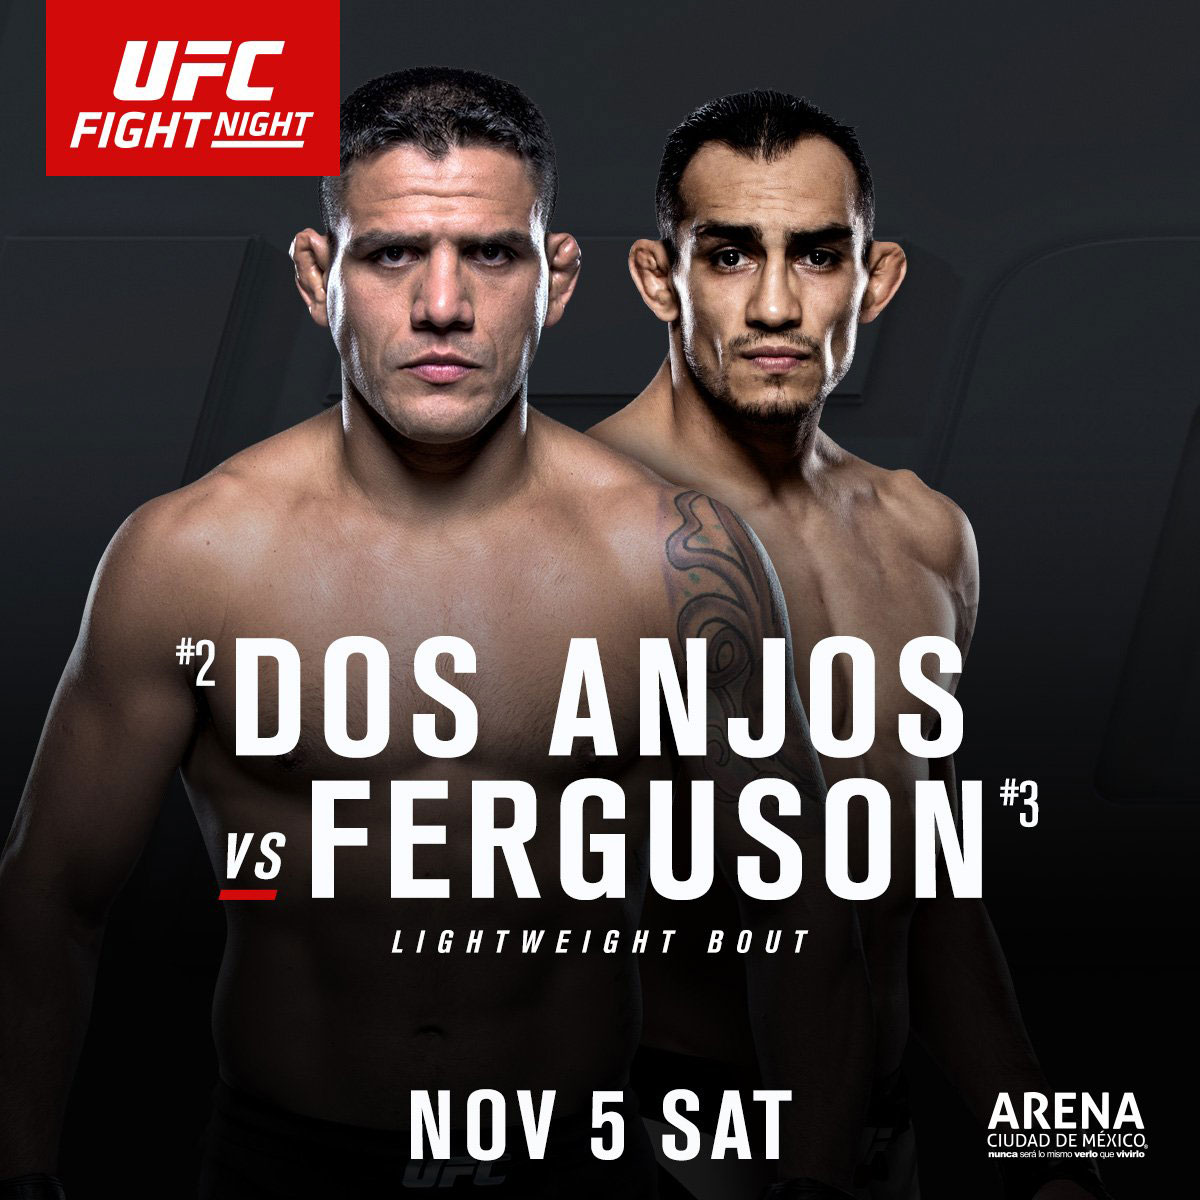 Poster/affiche UFC Fight Night 98 - Mexico